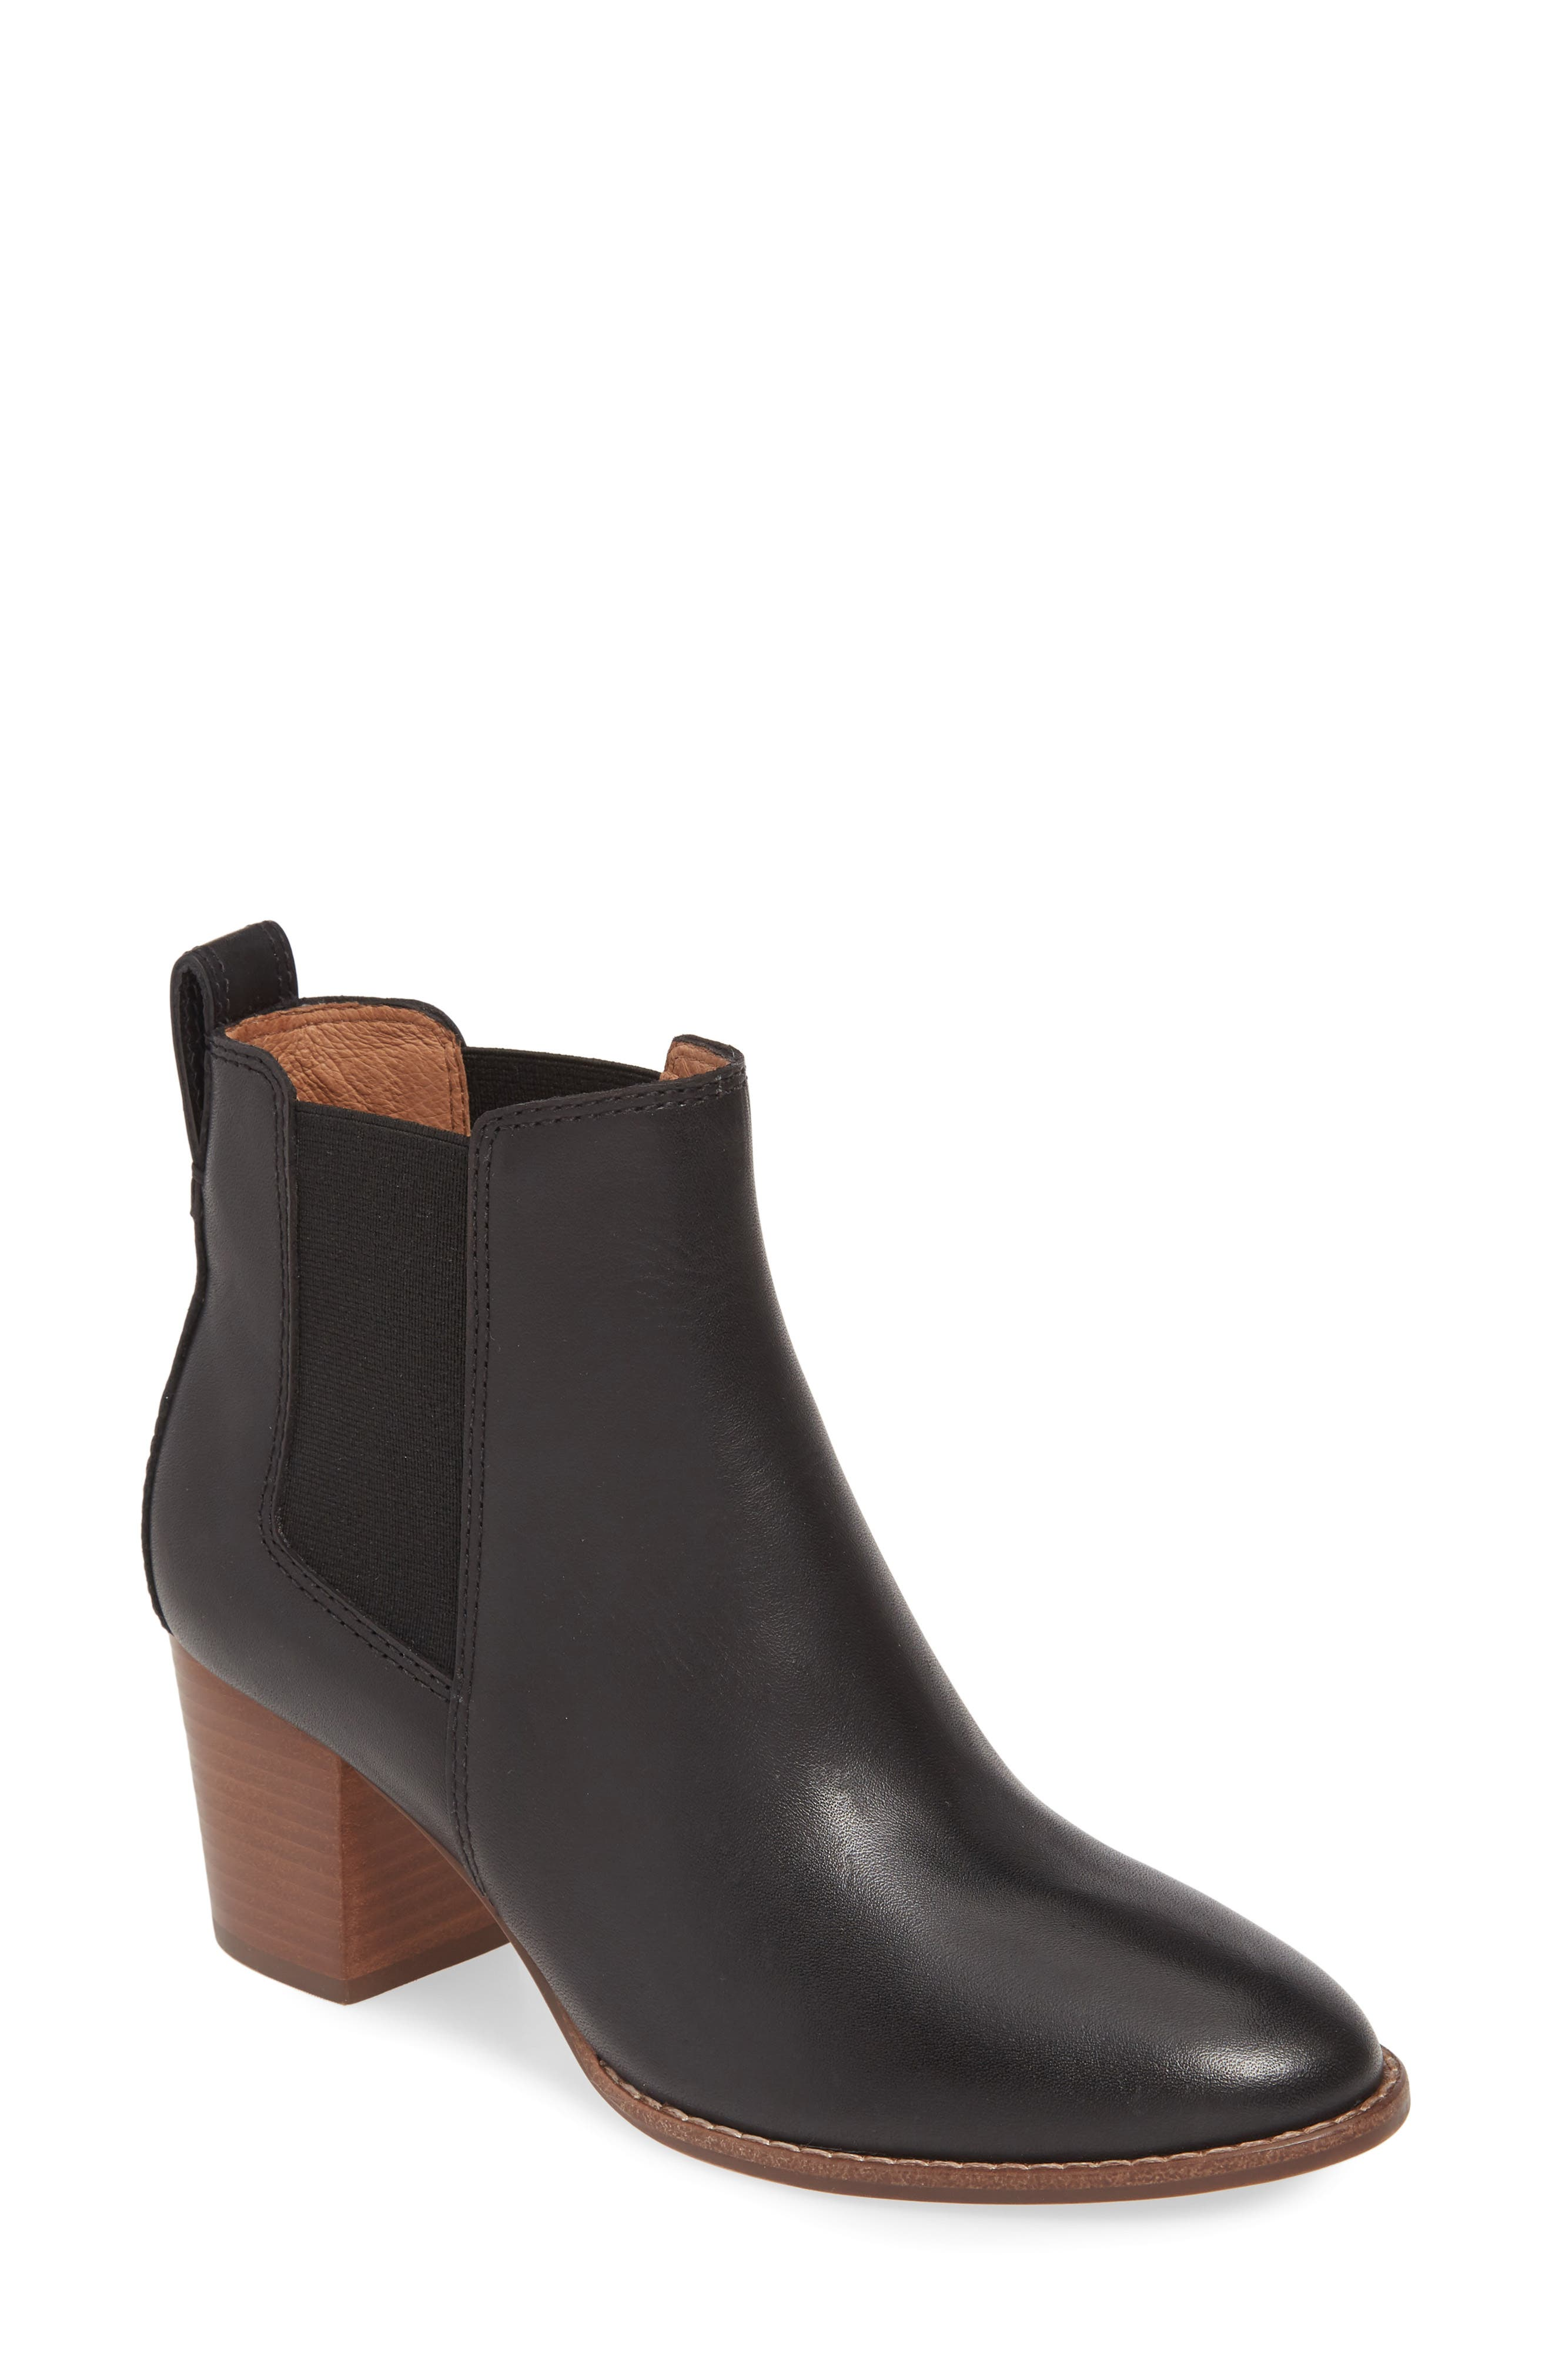 f1879ddf1c Women's Madewell Boots   Nordstrom